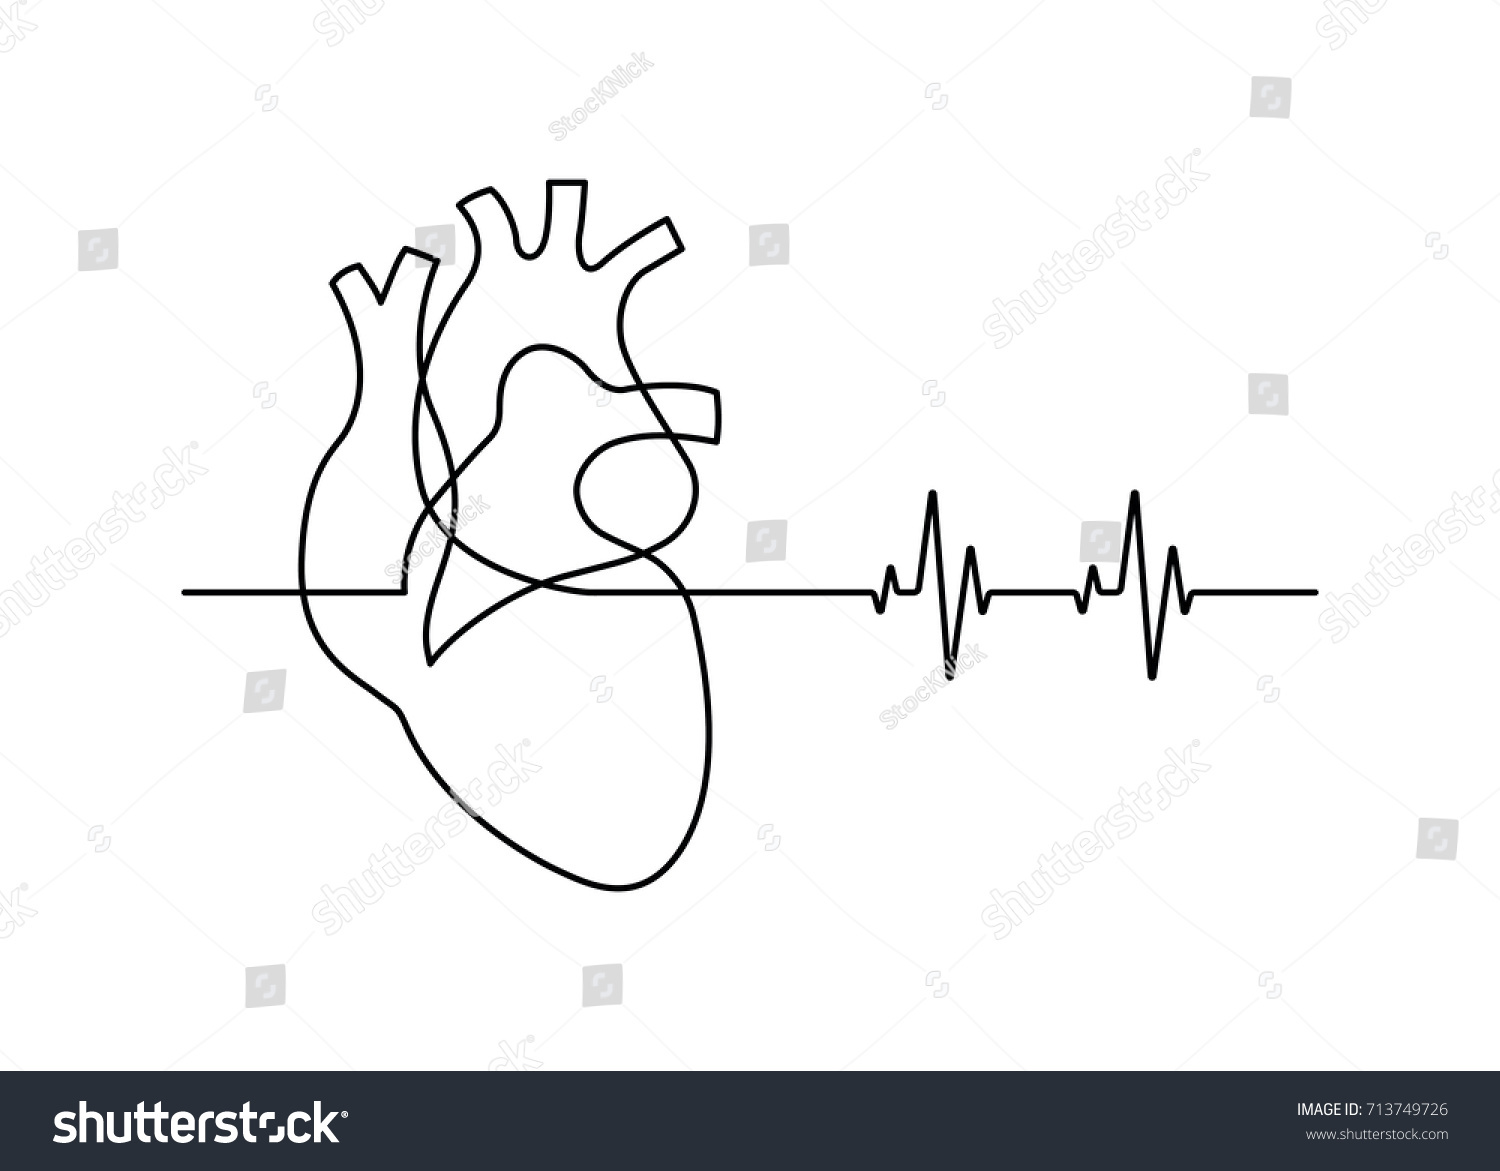 Heartbeat Line Drawing: Continuous Line Drawing Heart Heartbeat On Stock Vector